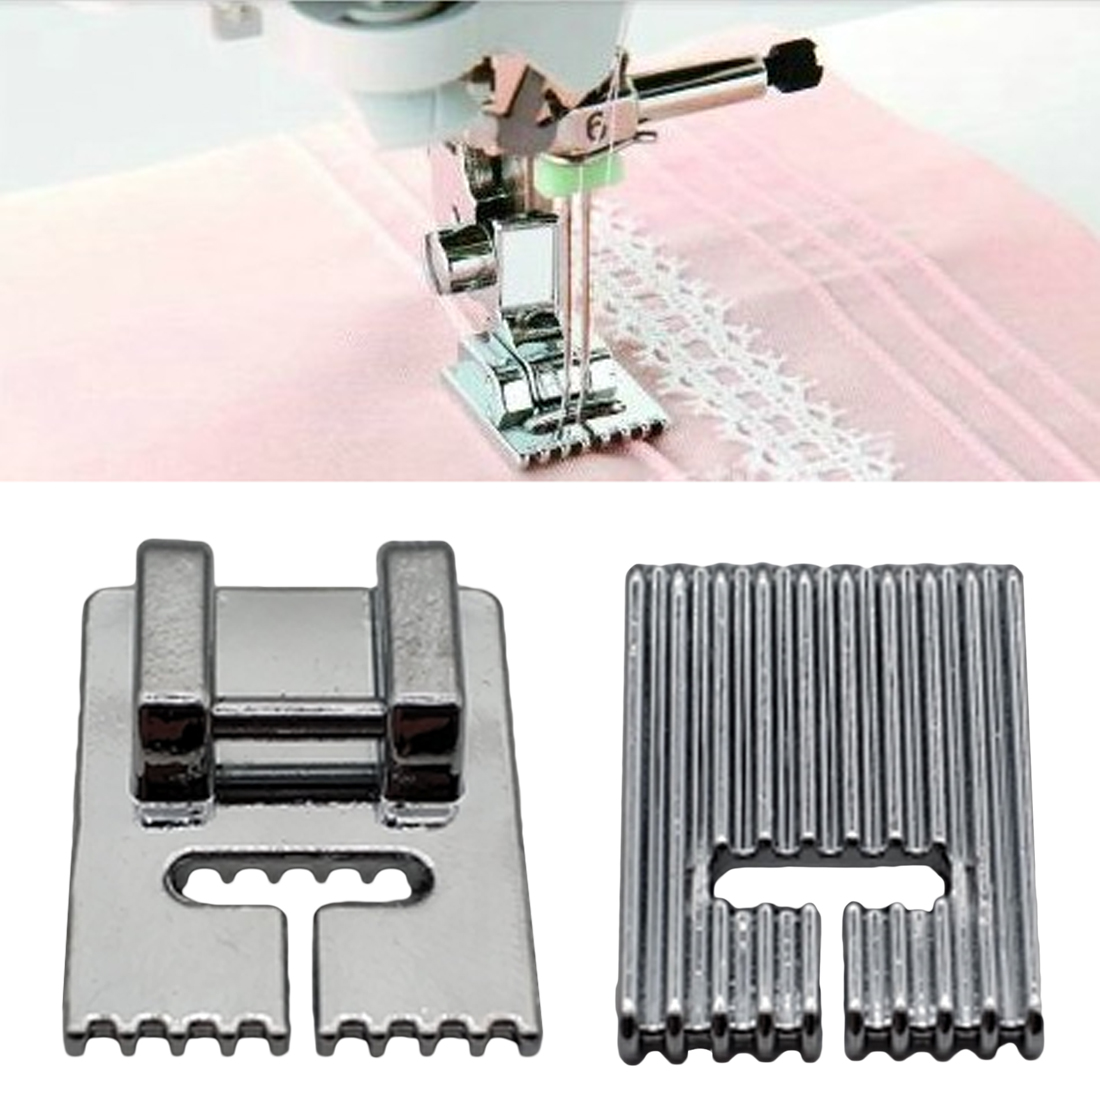 5/7/9 Grooves Sewing Machine Foot Making Pleat Tank Household Electric Sewing Machine Presser Foot Tools